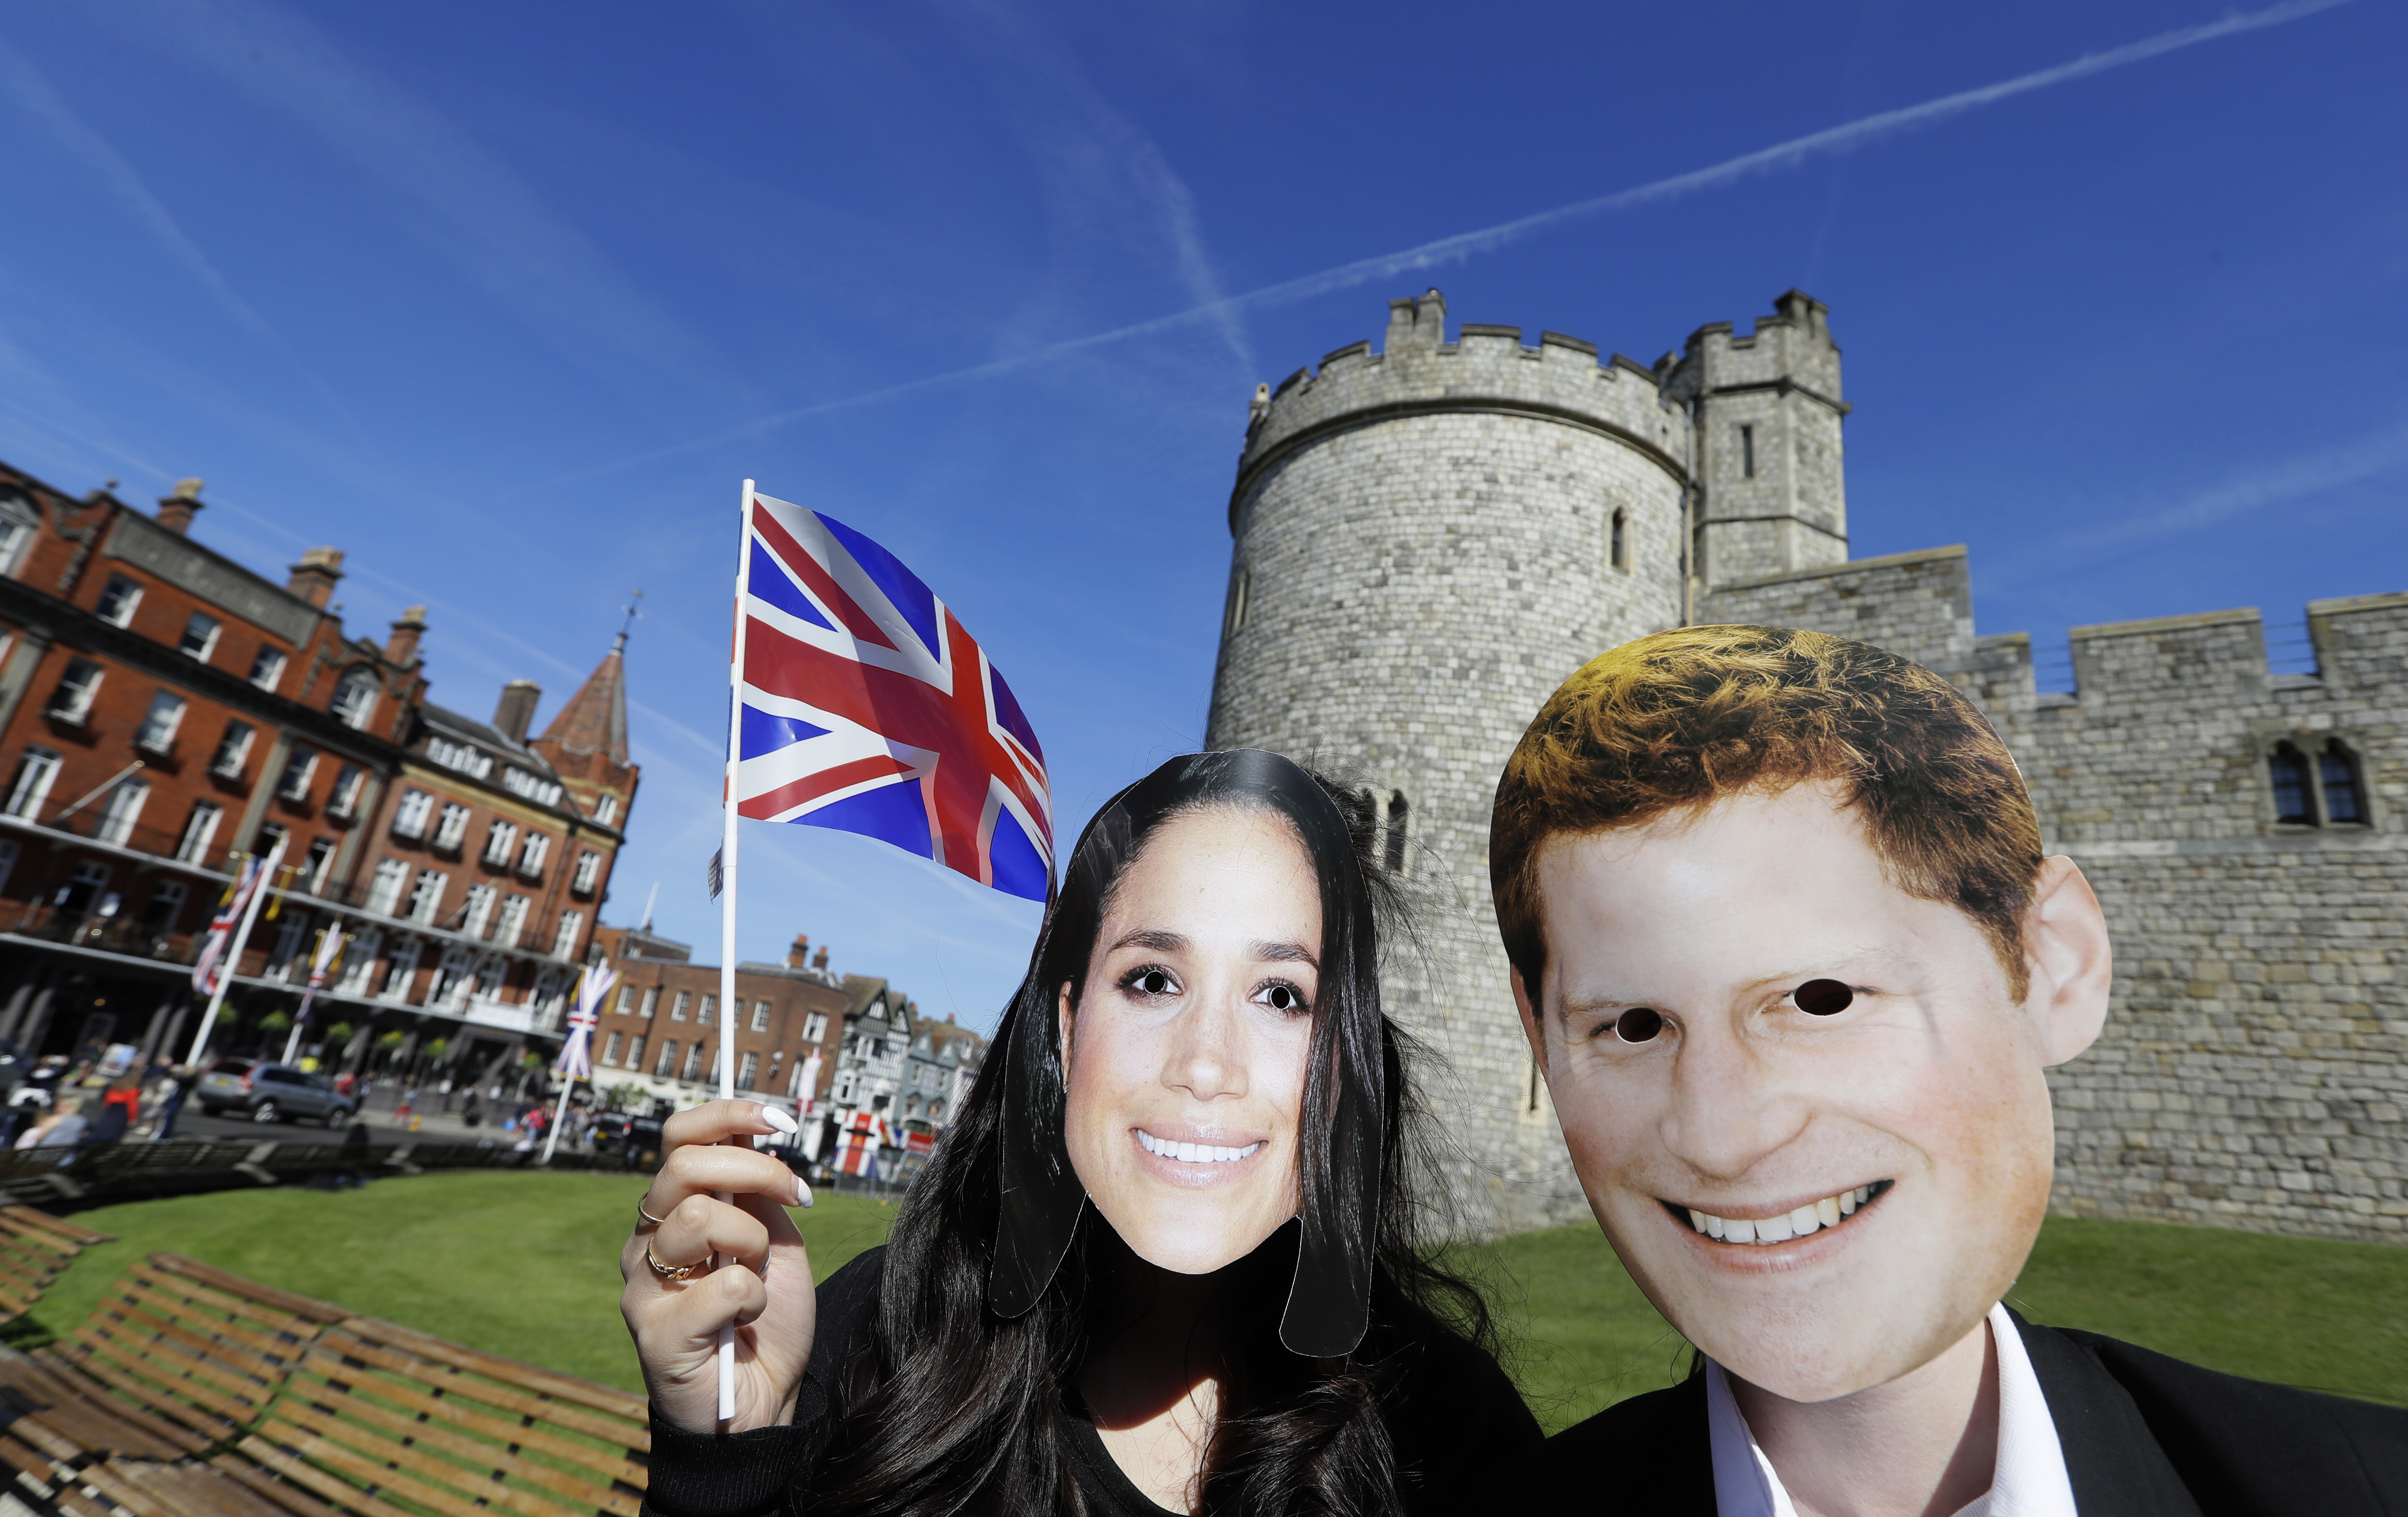 People wearing face masks of Britain's Prince Harry and Meghan Markle pose for a photograph outside Windsor Castle in Windsor, England, May 14, 2018.